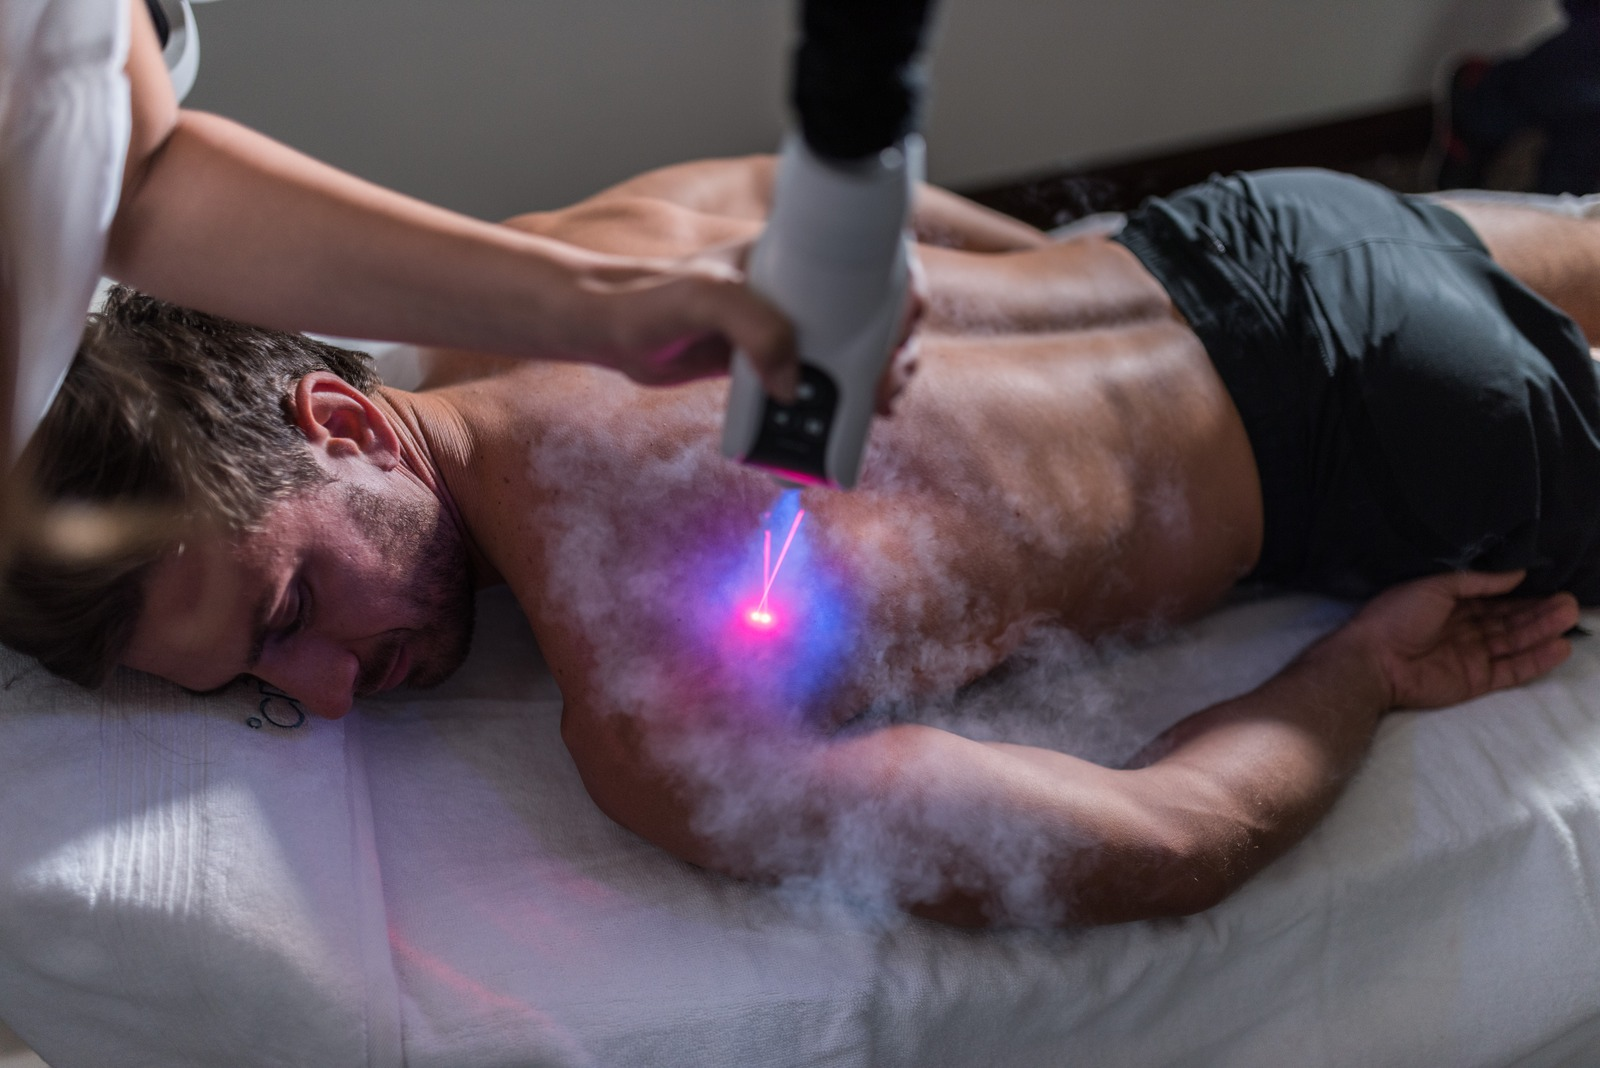 LED Lights And Precision Lasers To Indicate Optimal Distance, Pinpoint Treatment Area And Alert User When Critical Skin Temperature Is Reached.